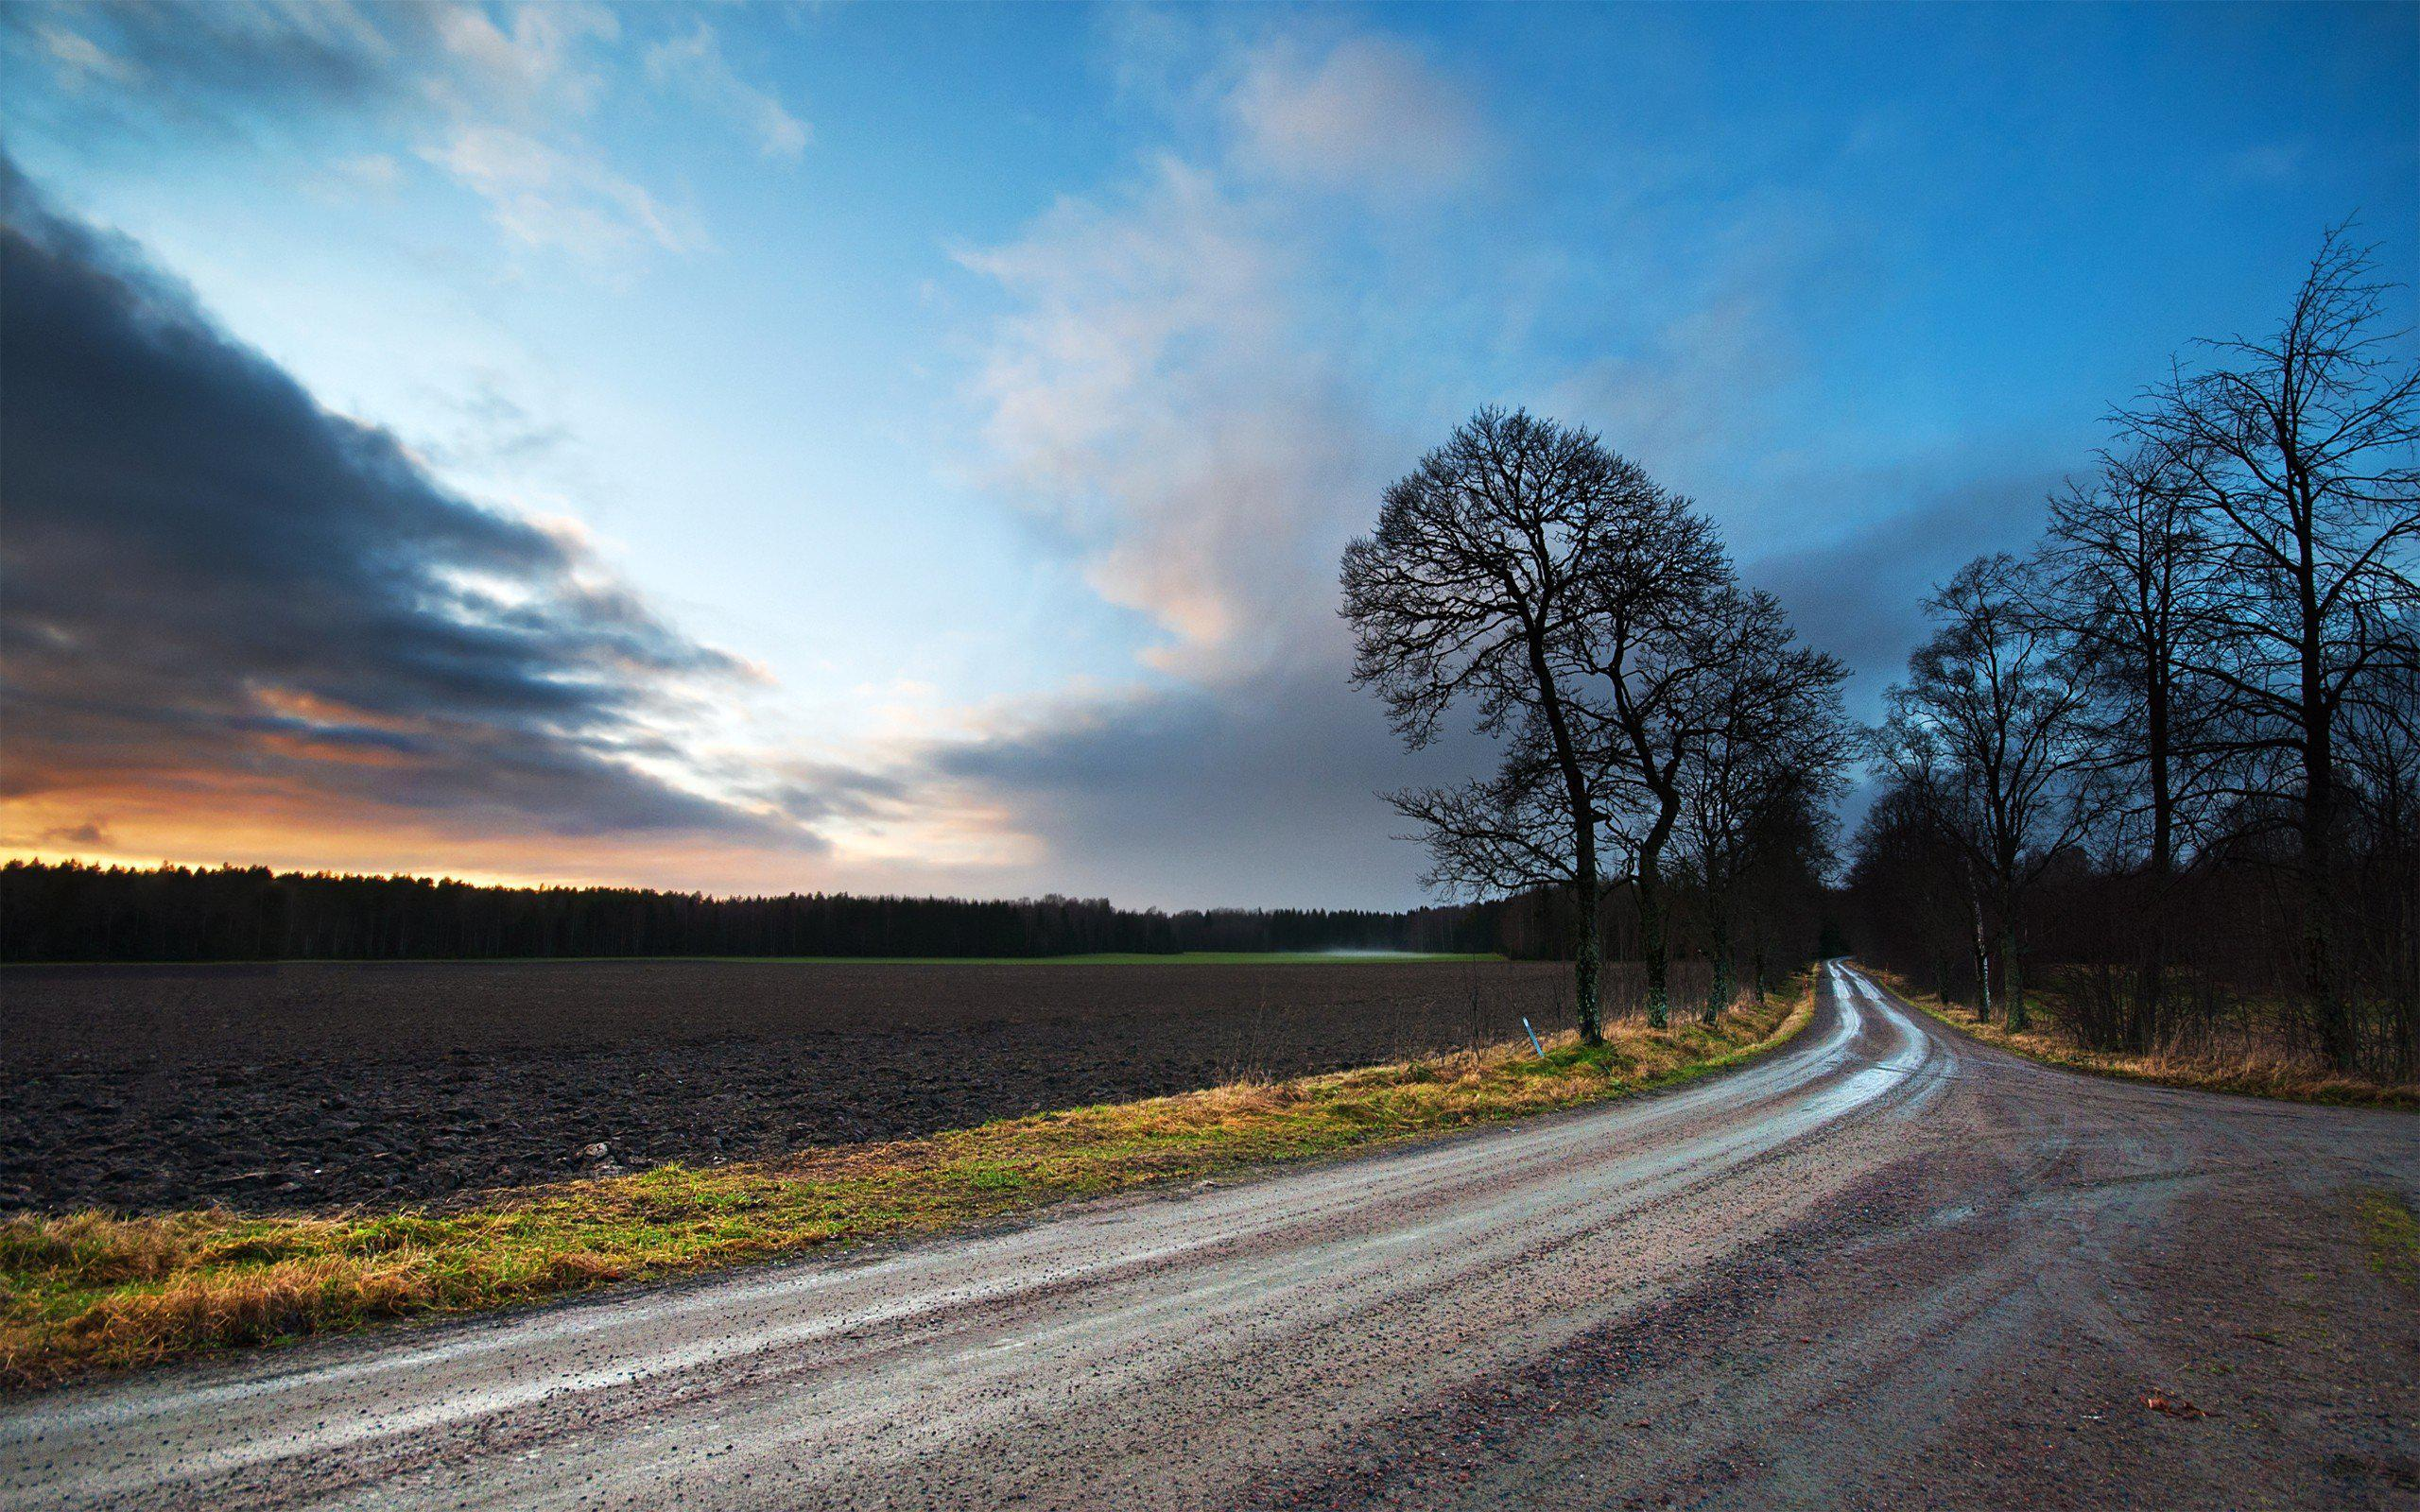 Happy New Year Hd Wallpaper 2014 Hd Landscapes Nature Fields Roads High Quality Wallpaper